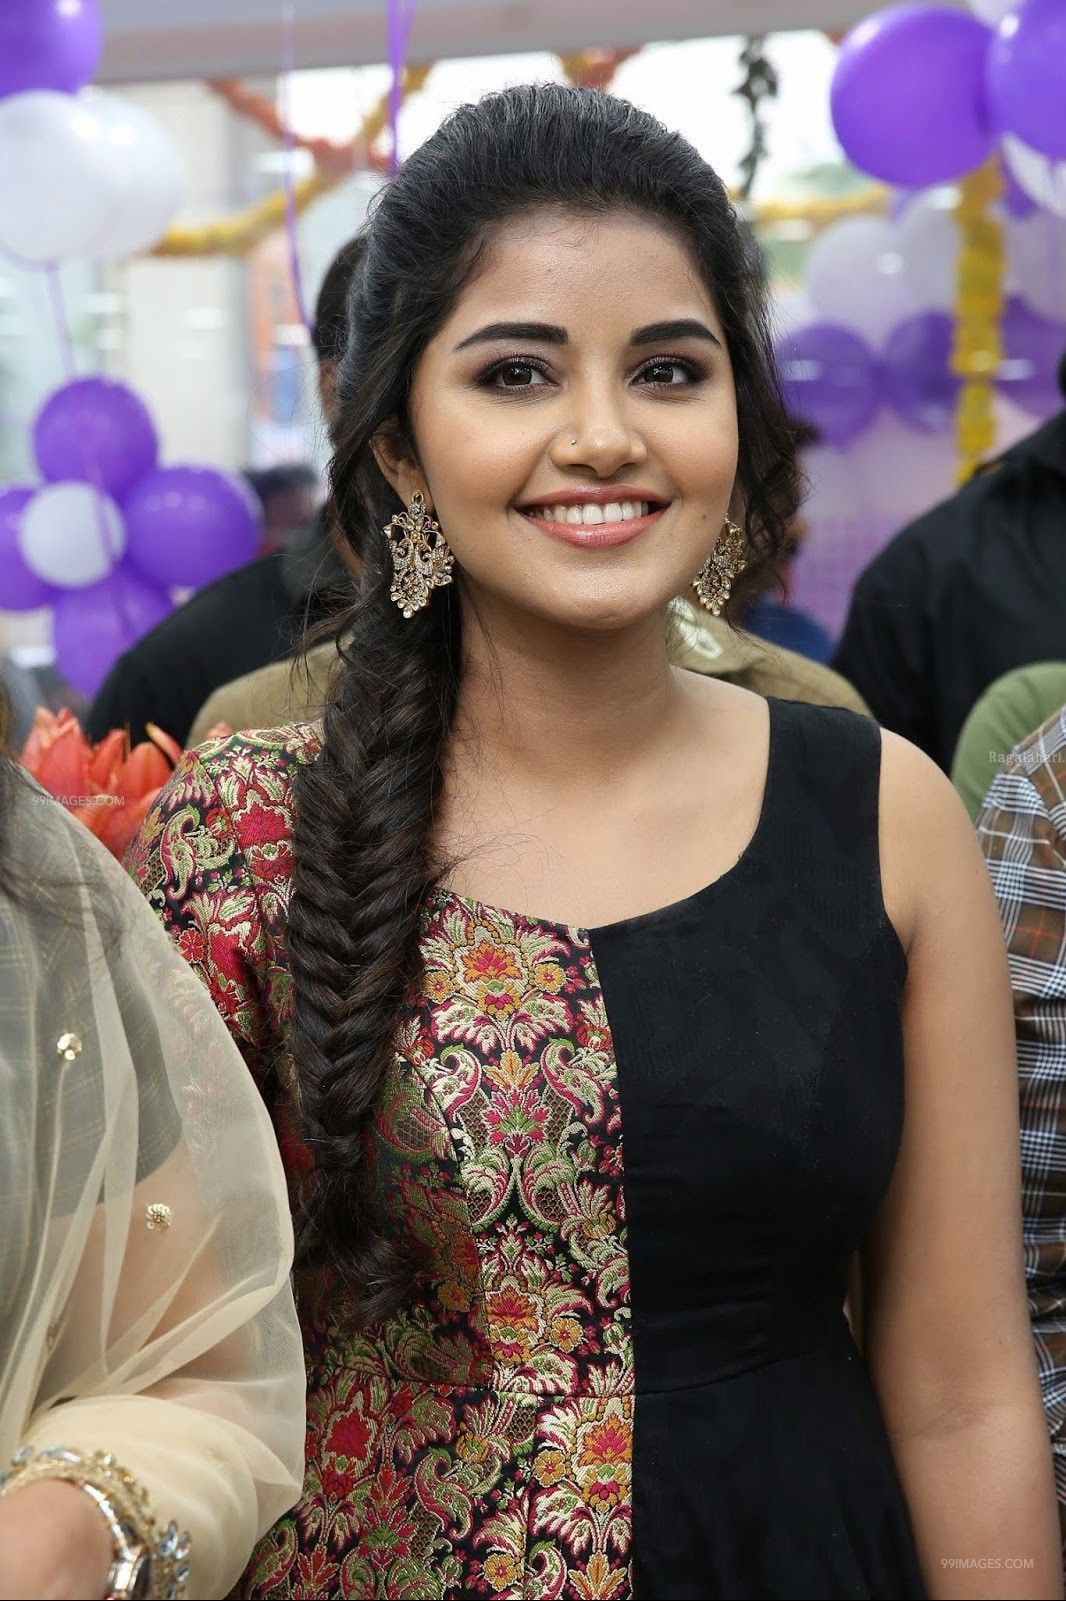 Anupama Parameswaran Hot HD Photos & Mobile Wallpapers, WhatsApp DP (1080p) (73411) - Anupama Parameswaran